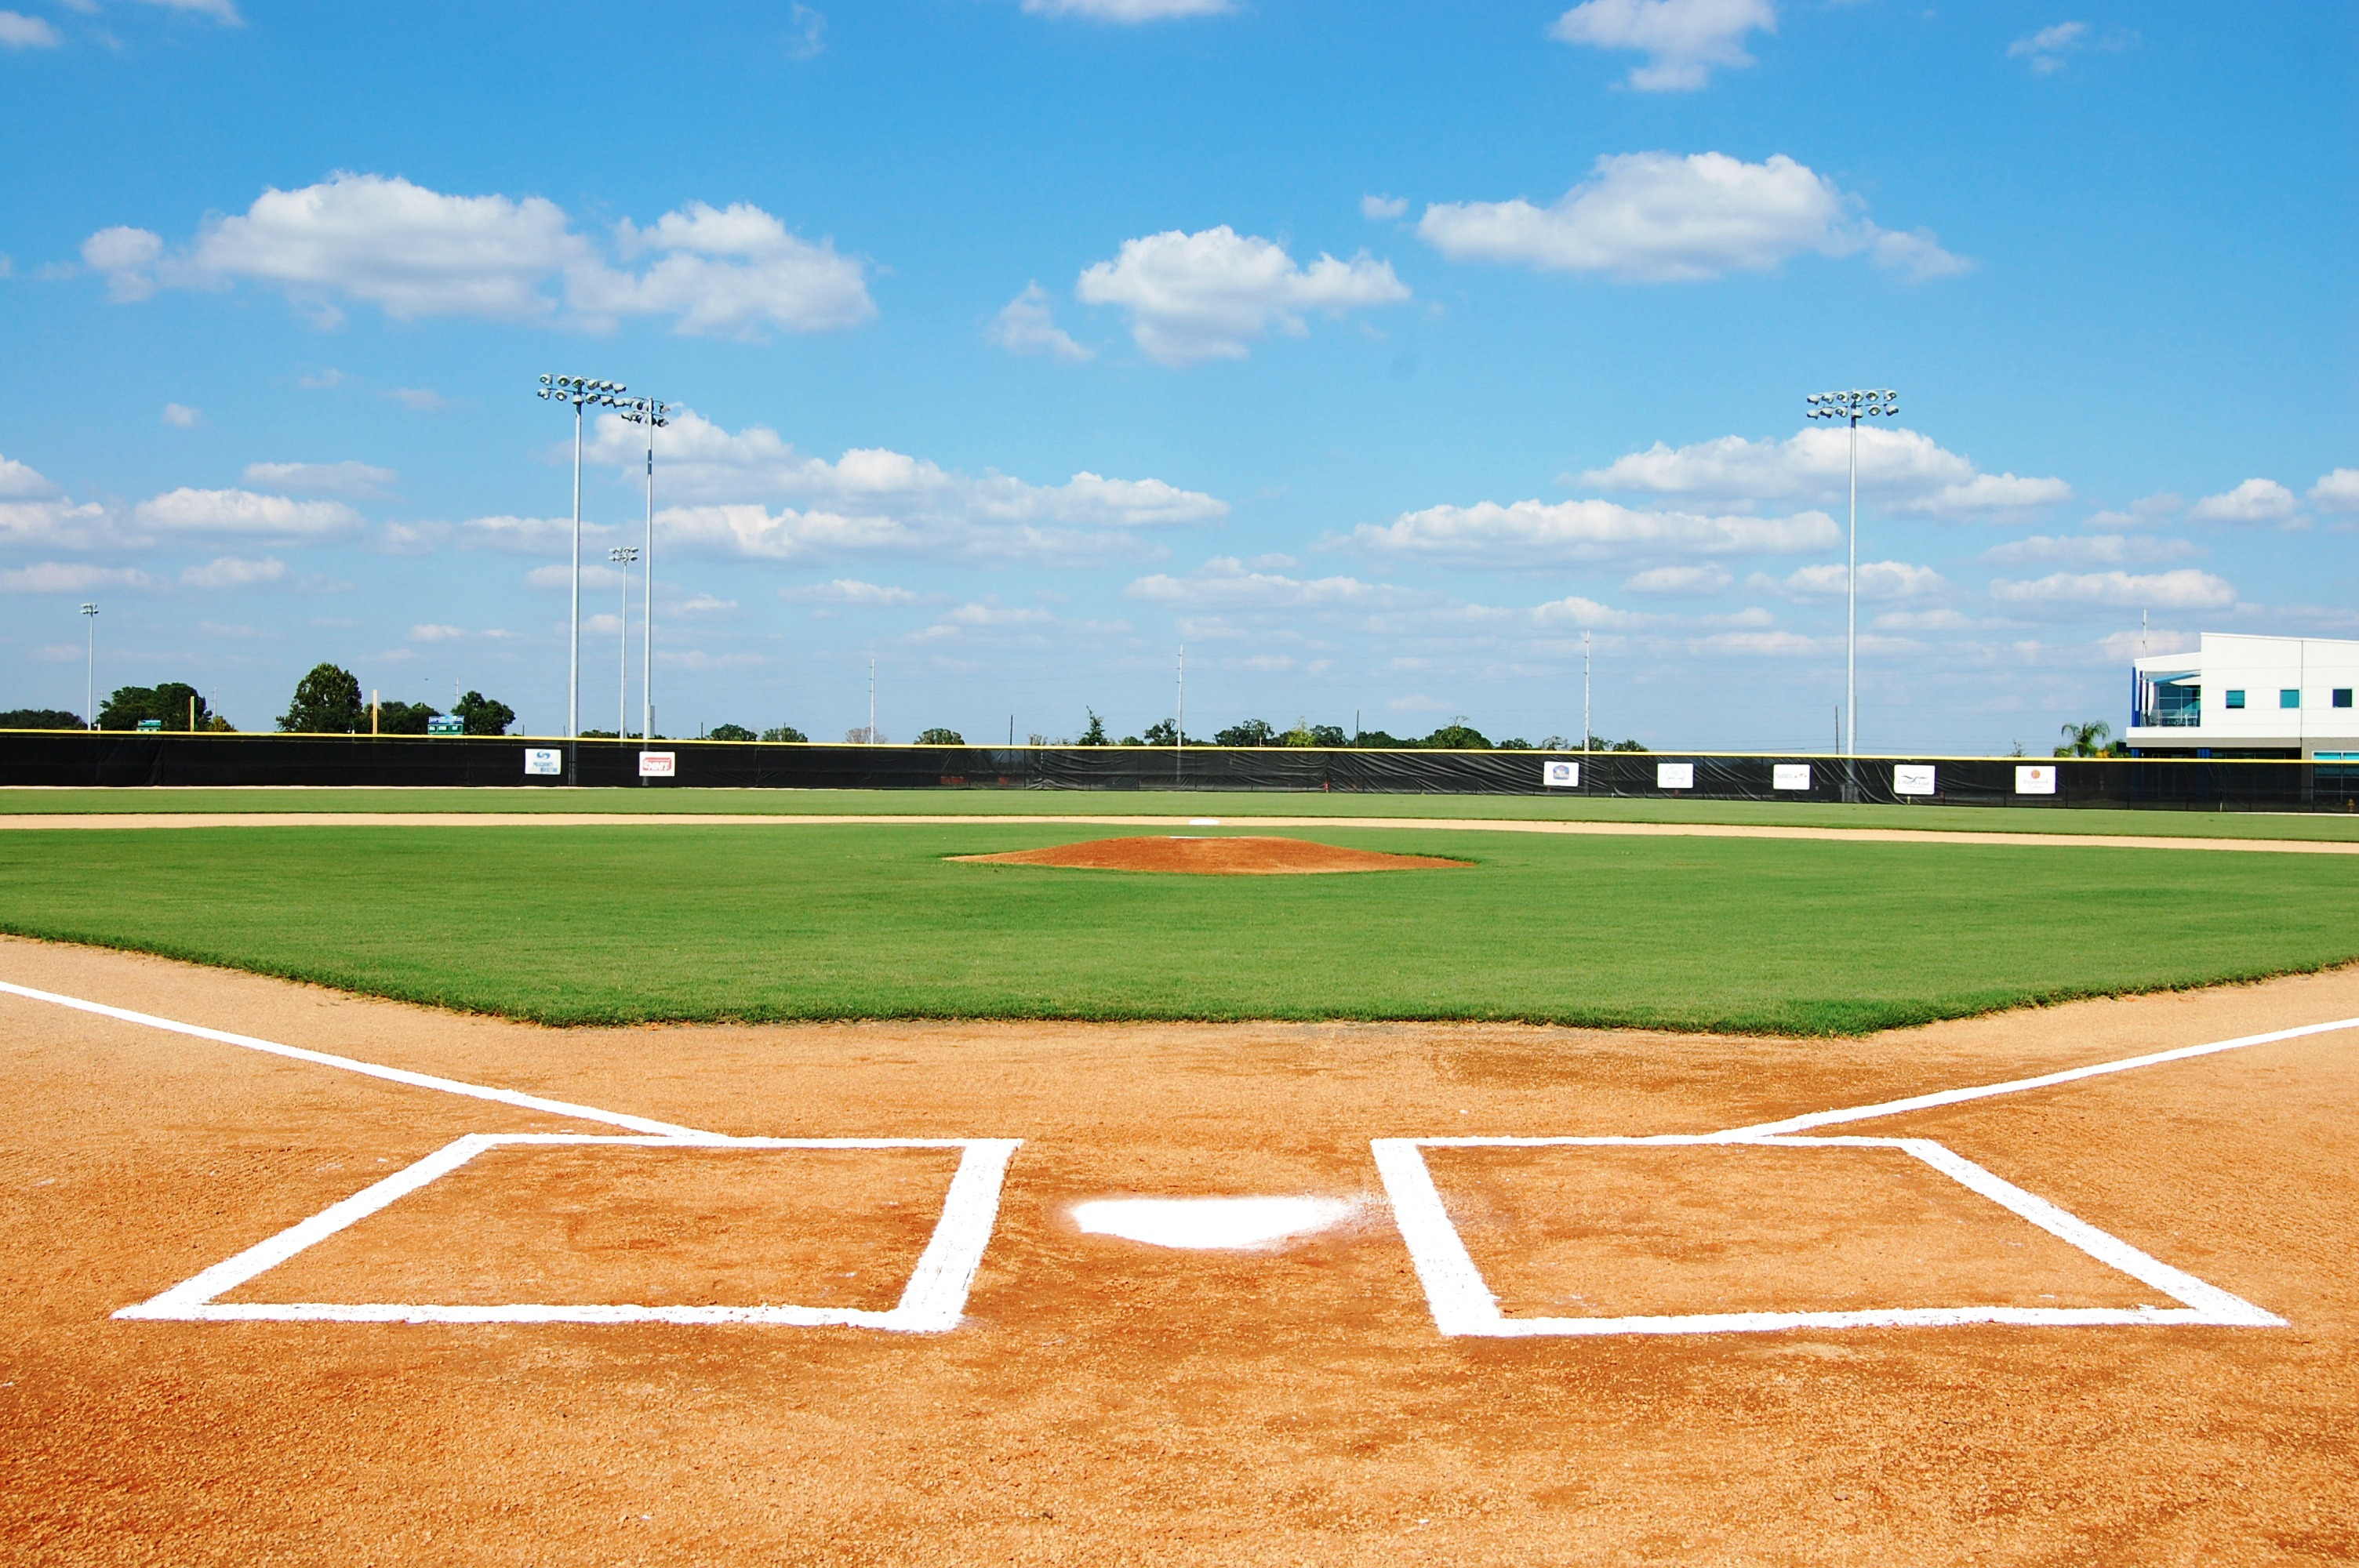 Baseball Field Wallpaper Hd Images amp Pictures   Becuo 3008x2000